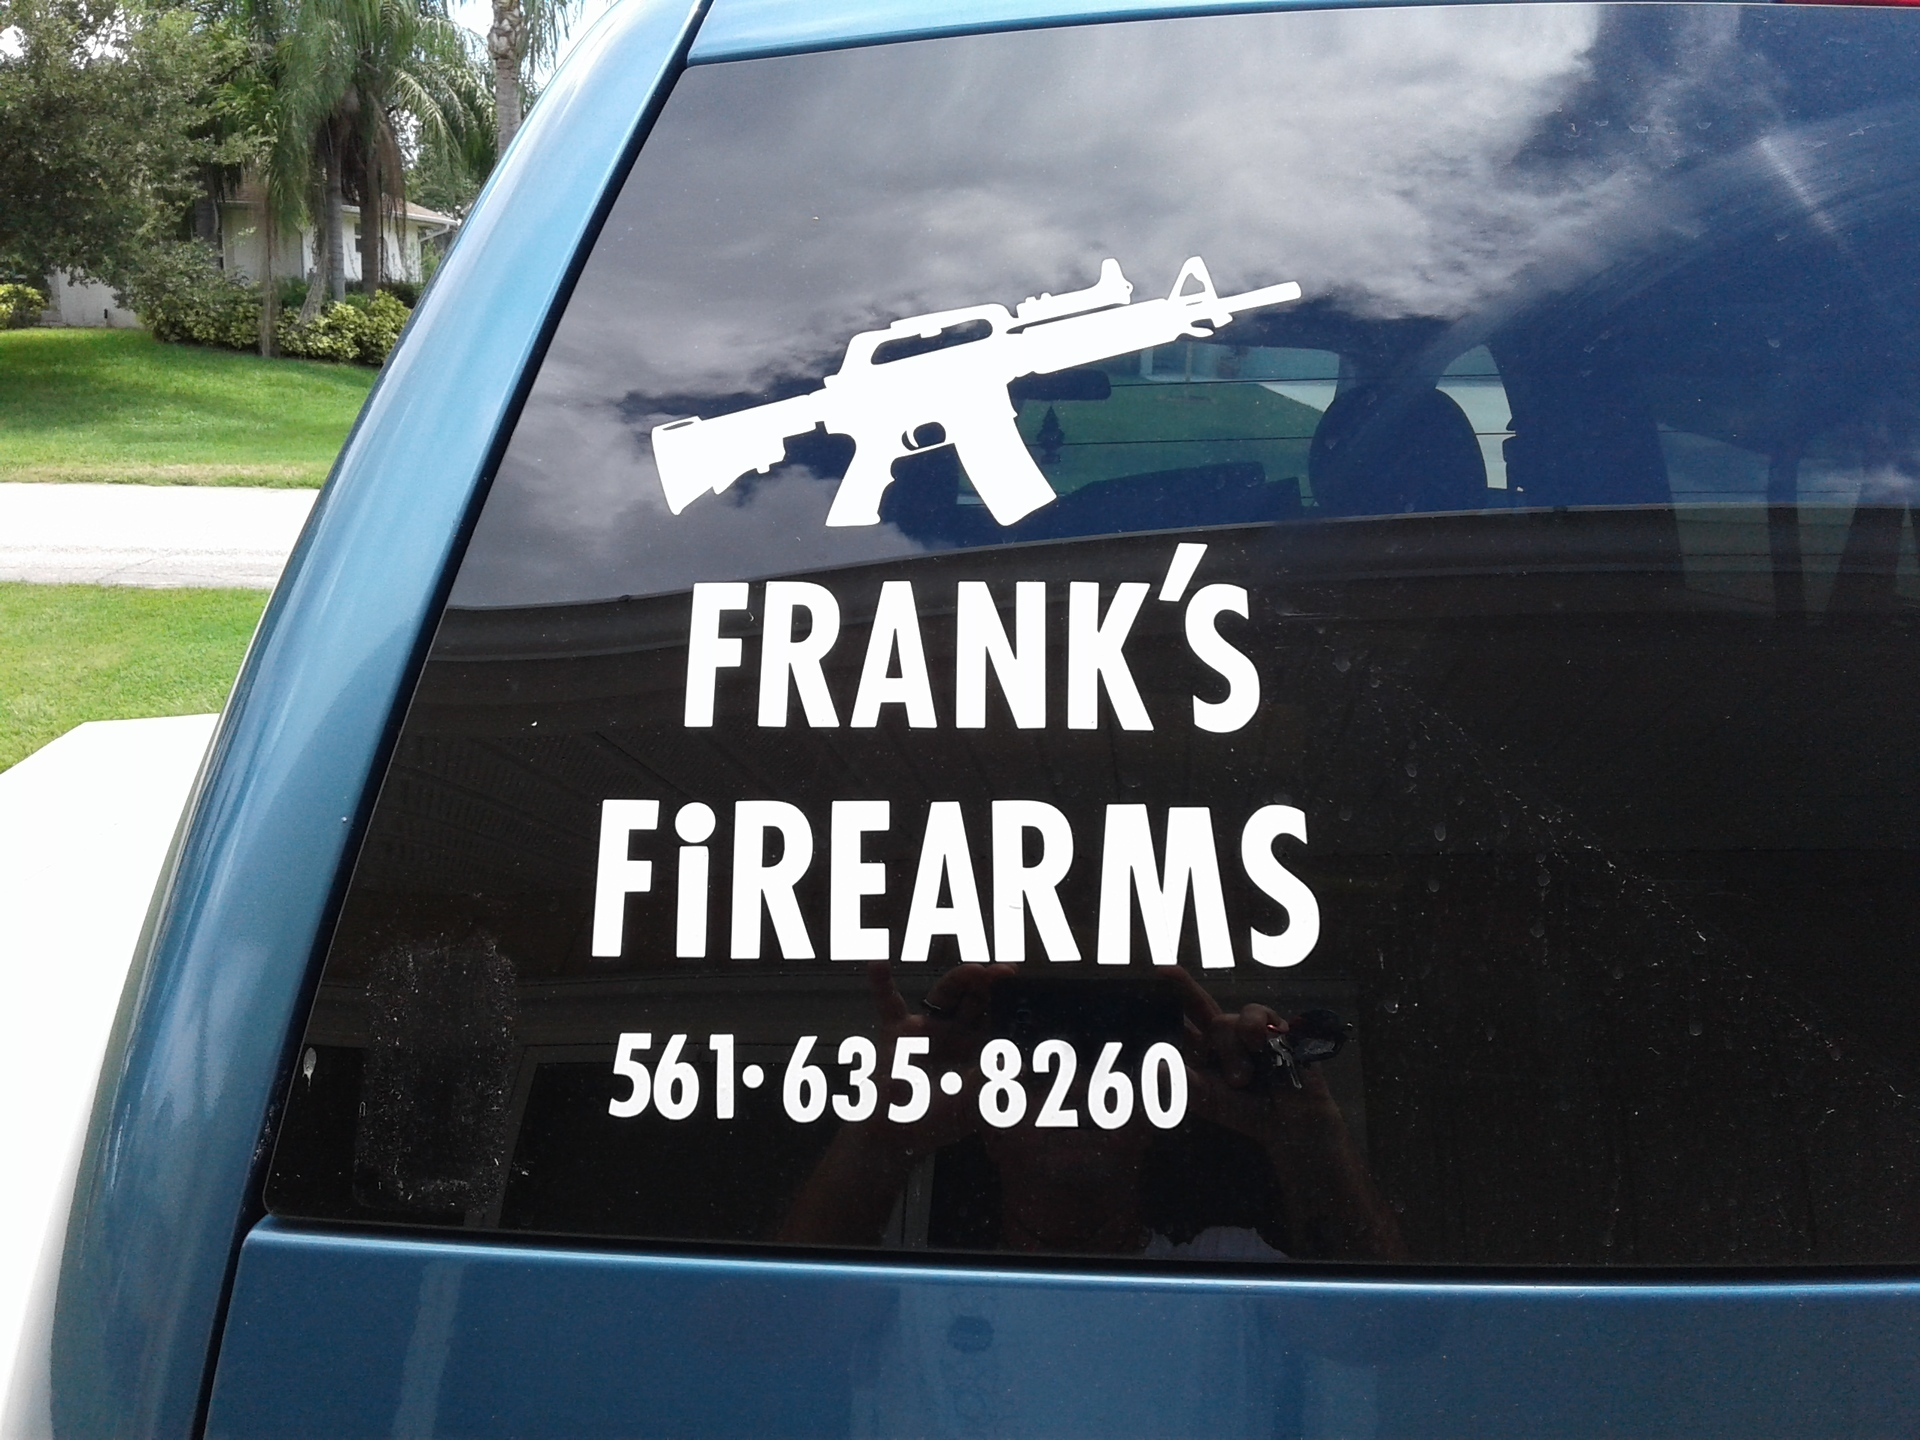 Frank's photograph of their Assault Rifle Gun Sticker